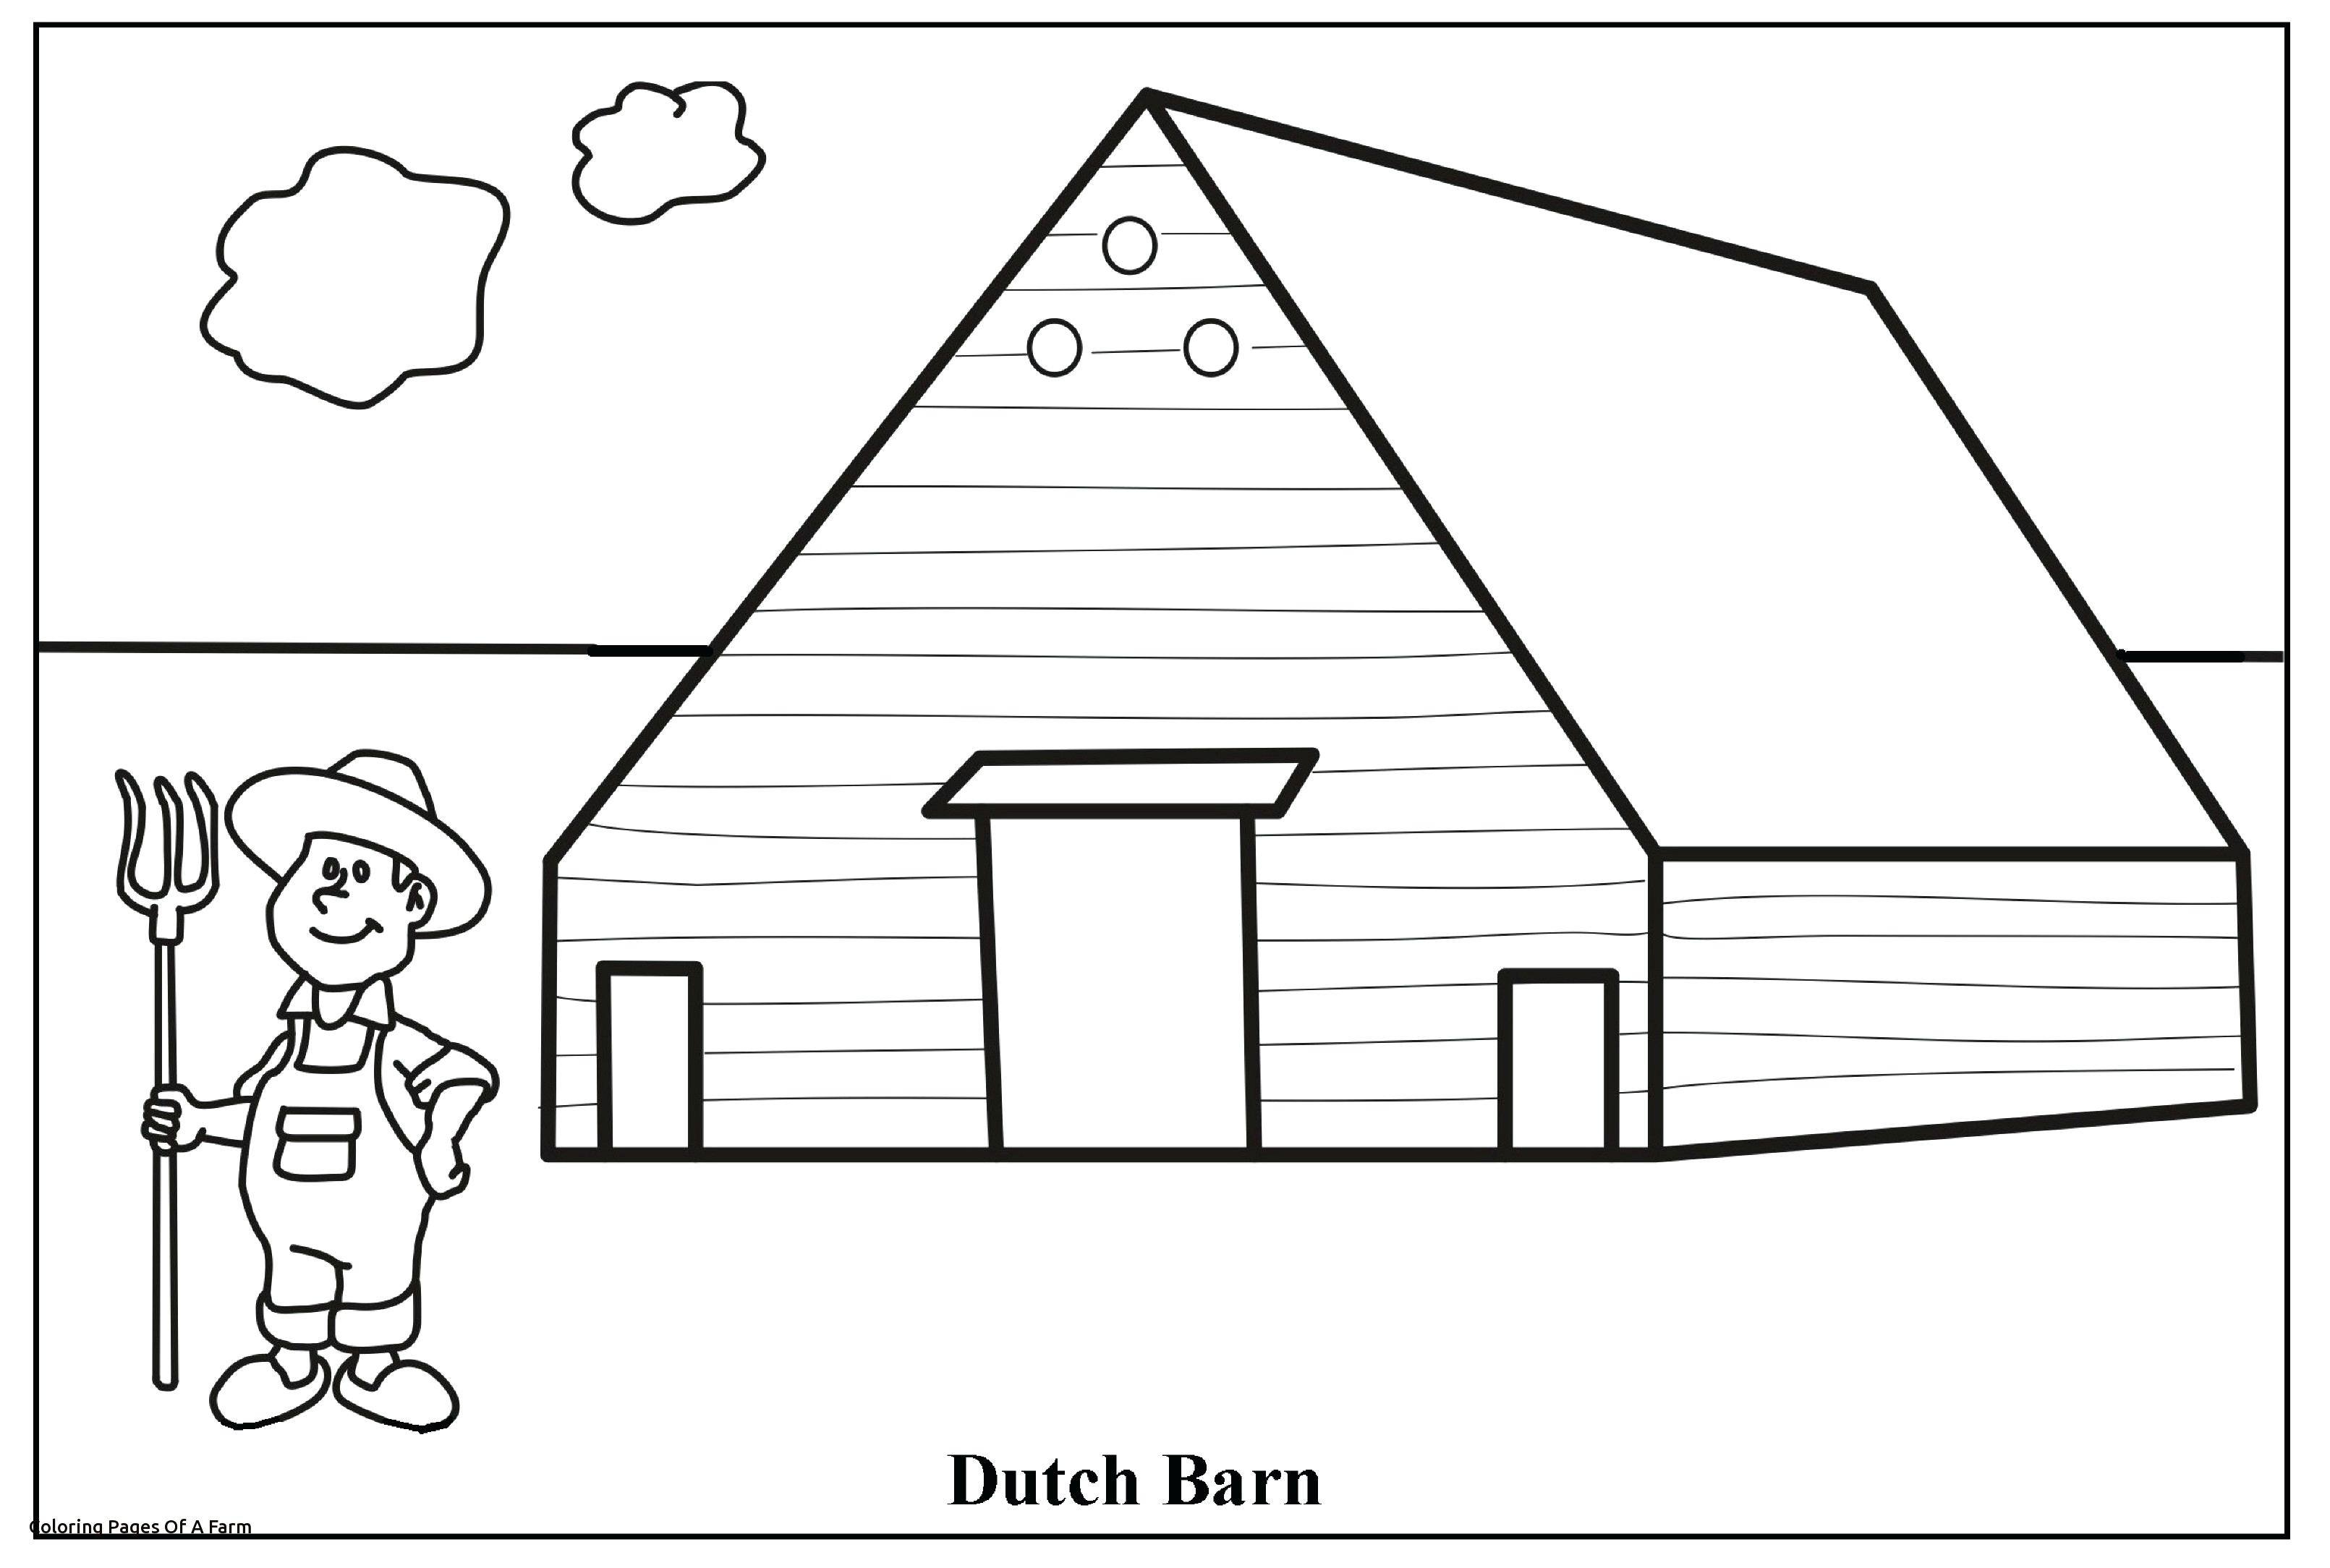 Printable Coloring House Coloring Sheet – Free Coloring Book - Free Printable Barn Coloring Pages